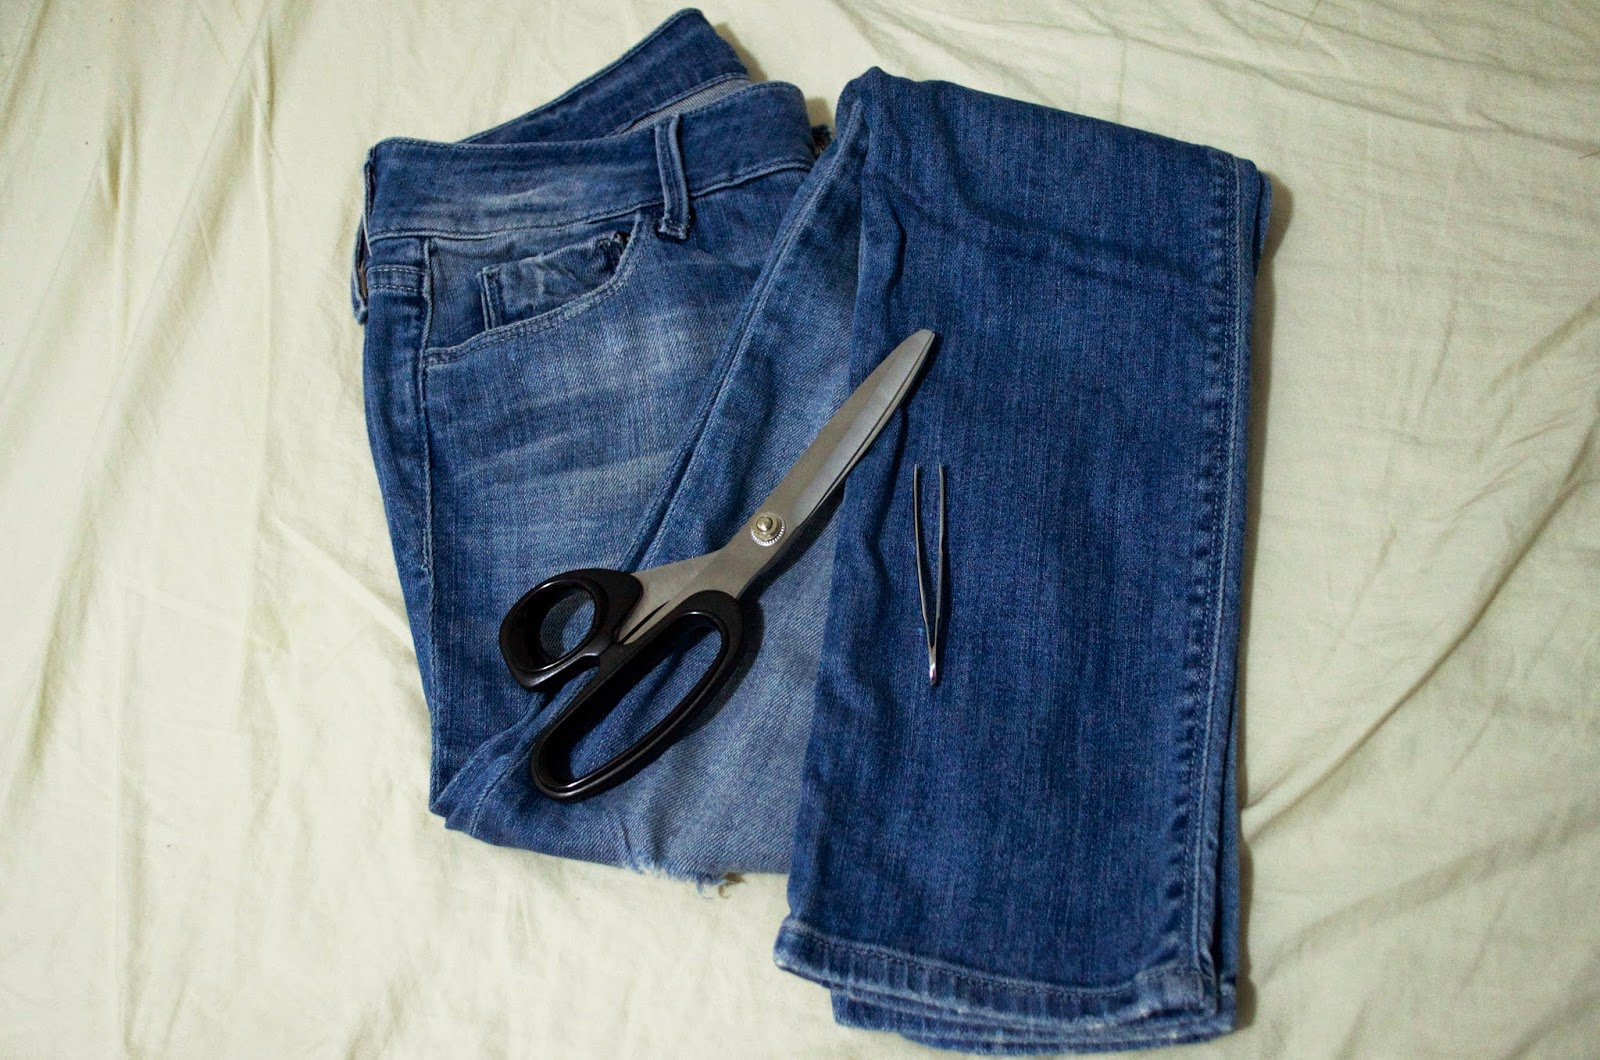 scissors diy do it yourself jeans ripped knee distressed thrifted op shopped second hand tweezers permanent marker sharpie